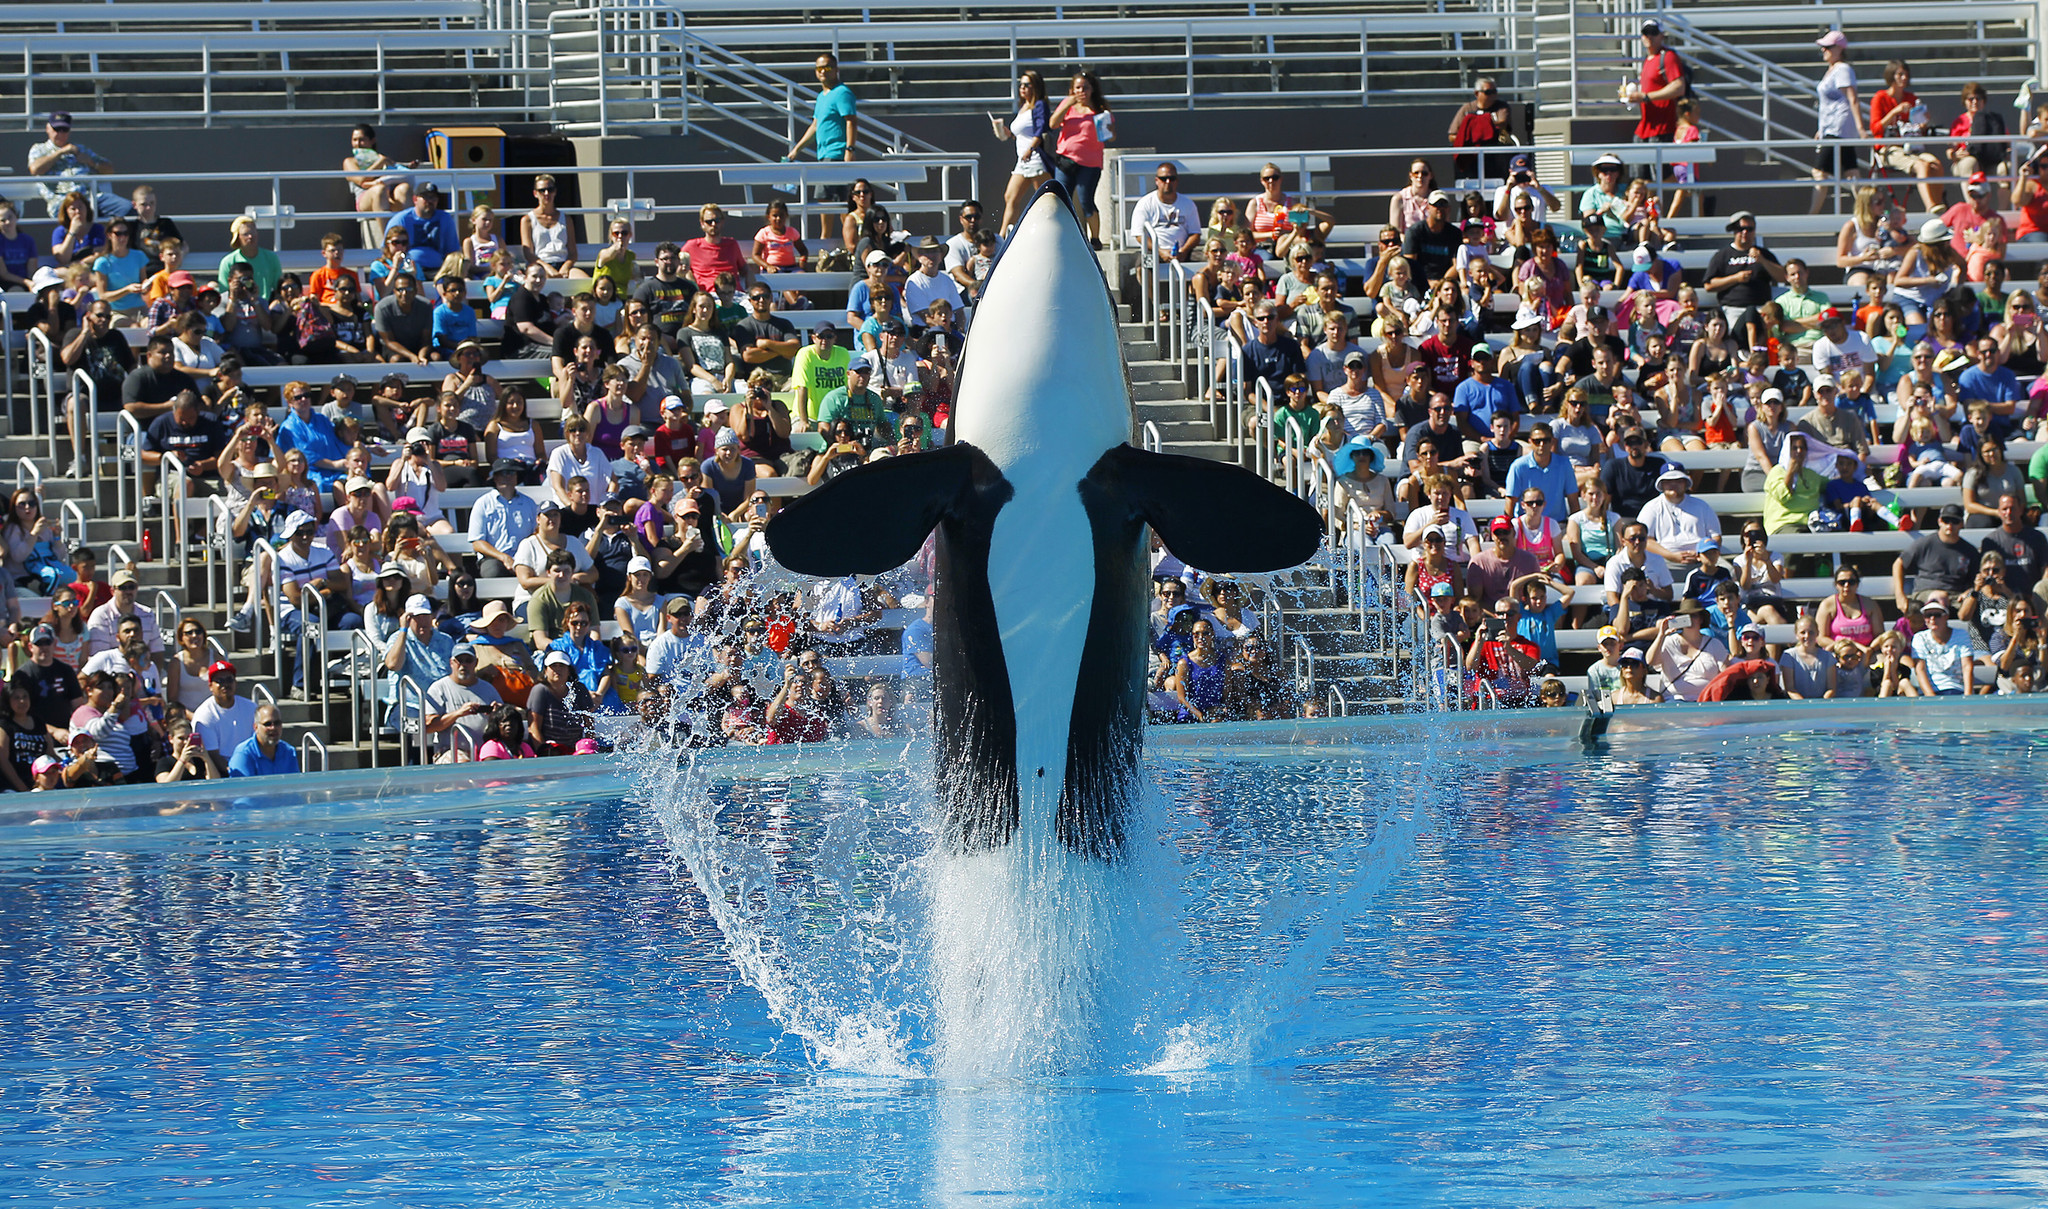 seaworld attendance drops sharply but ceo says san diego